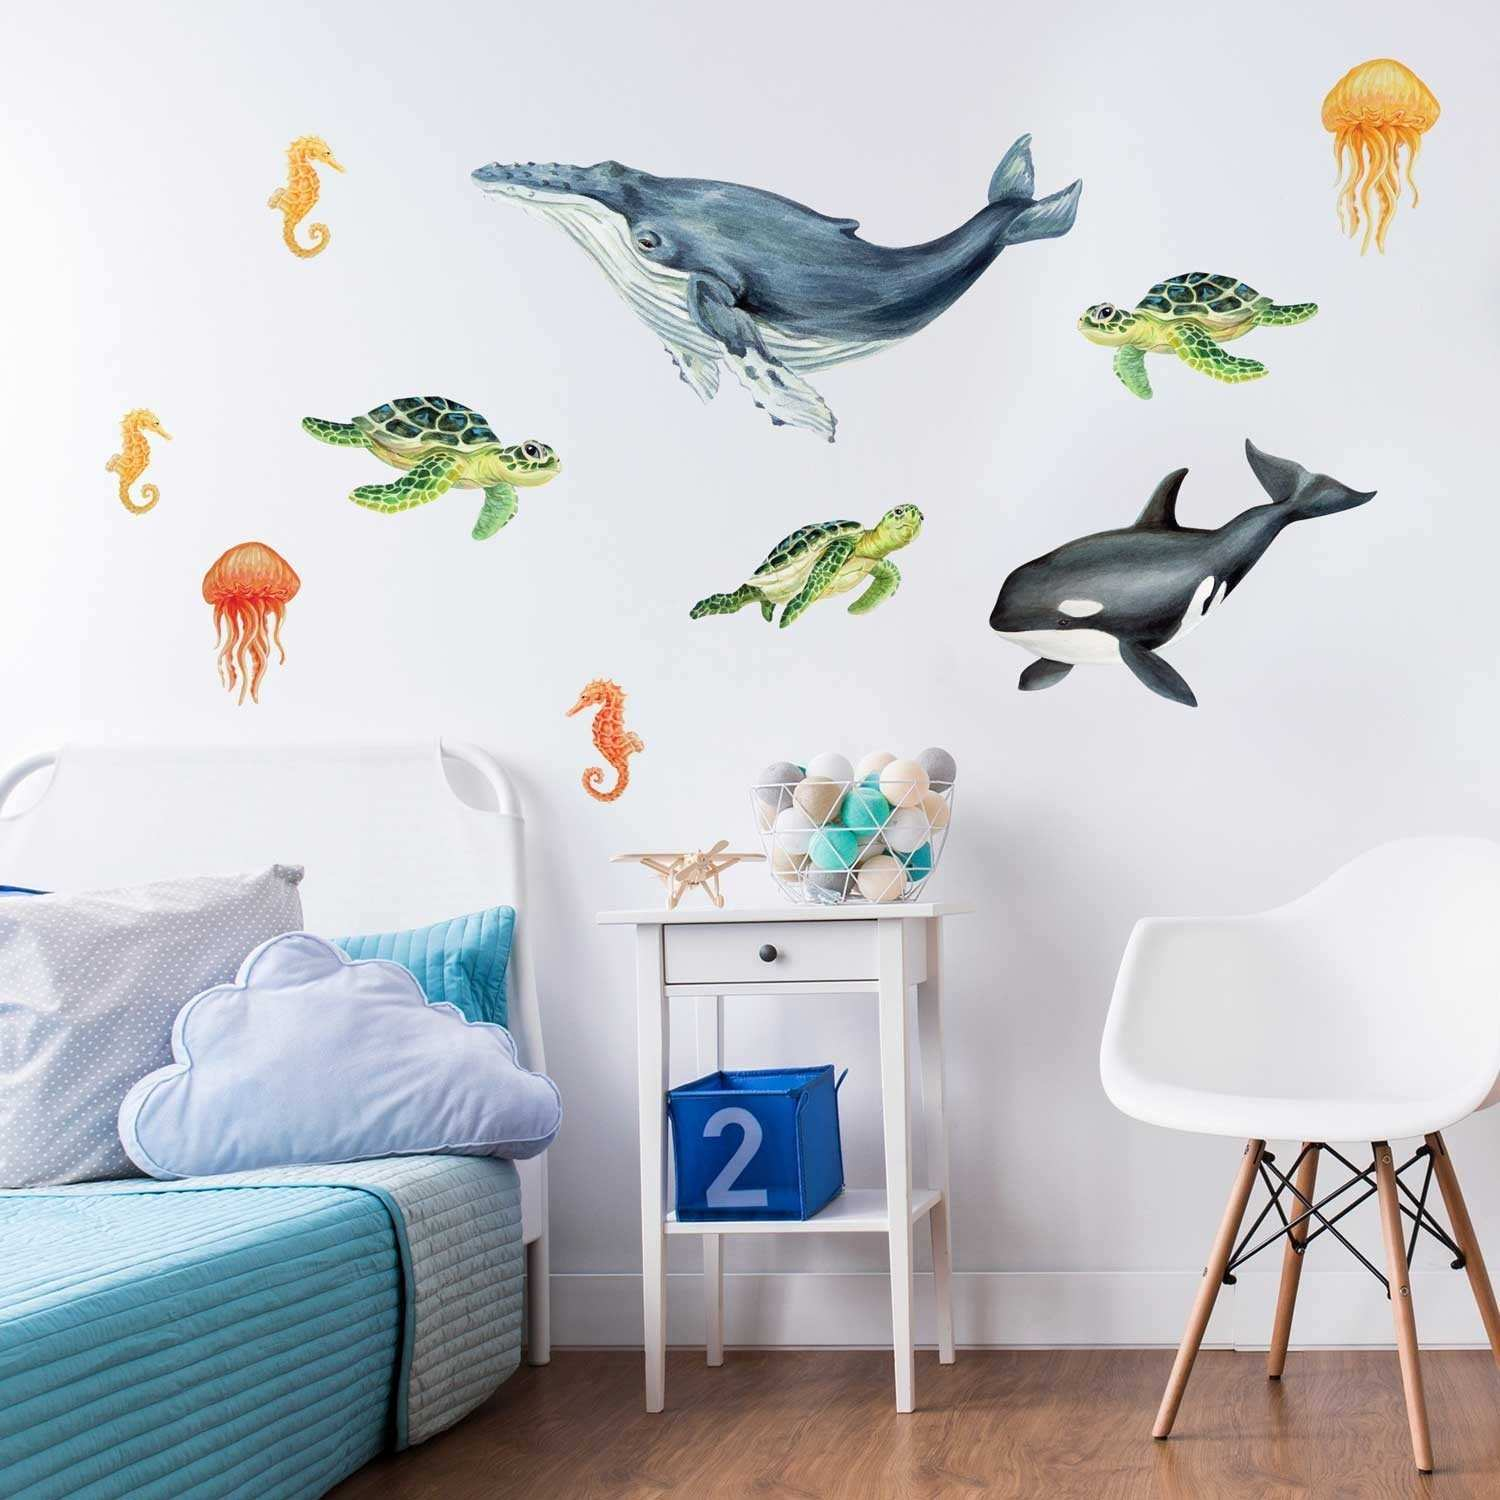 33 Lovely Decorative Wall Fans